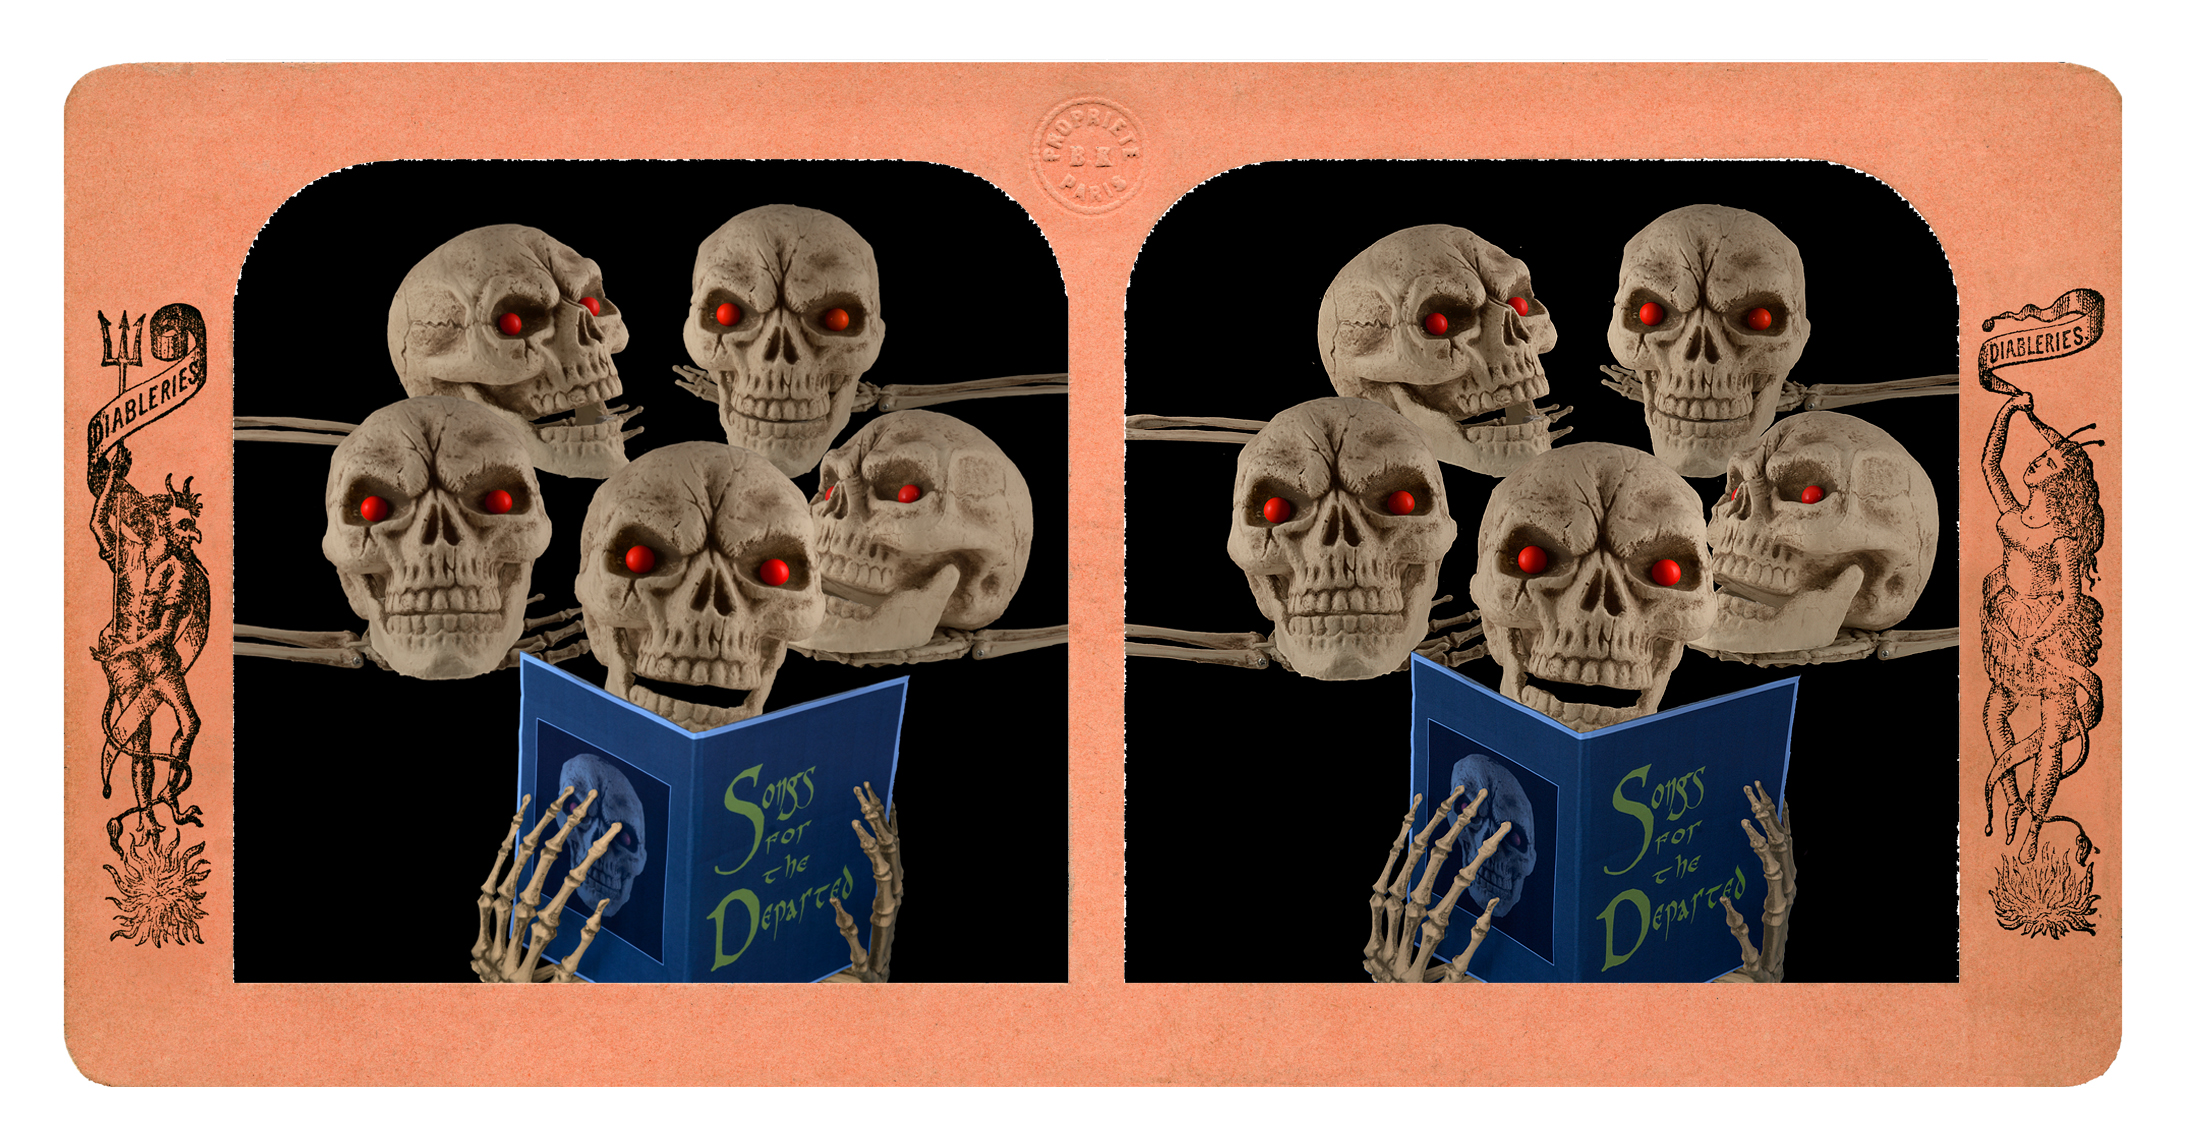 019-The Yorick Singers by Kevin Harvey